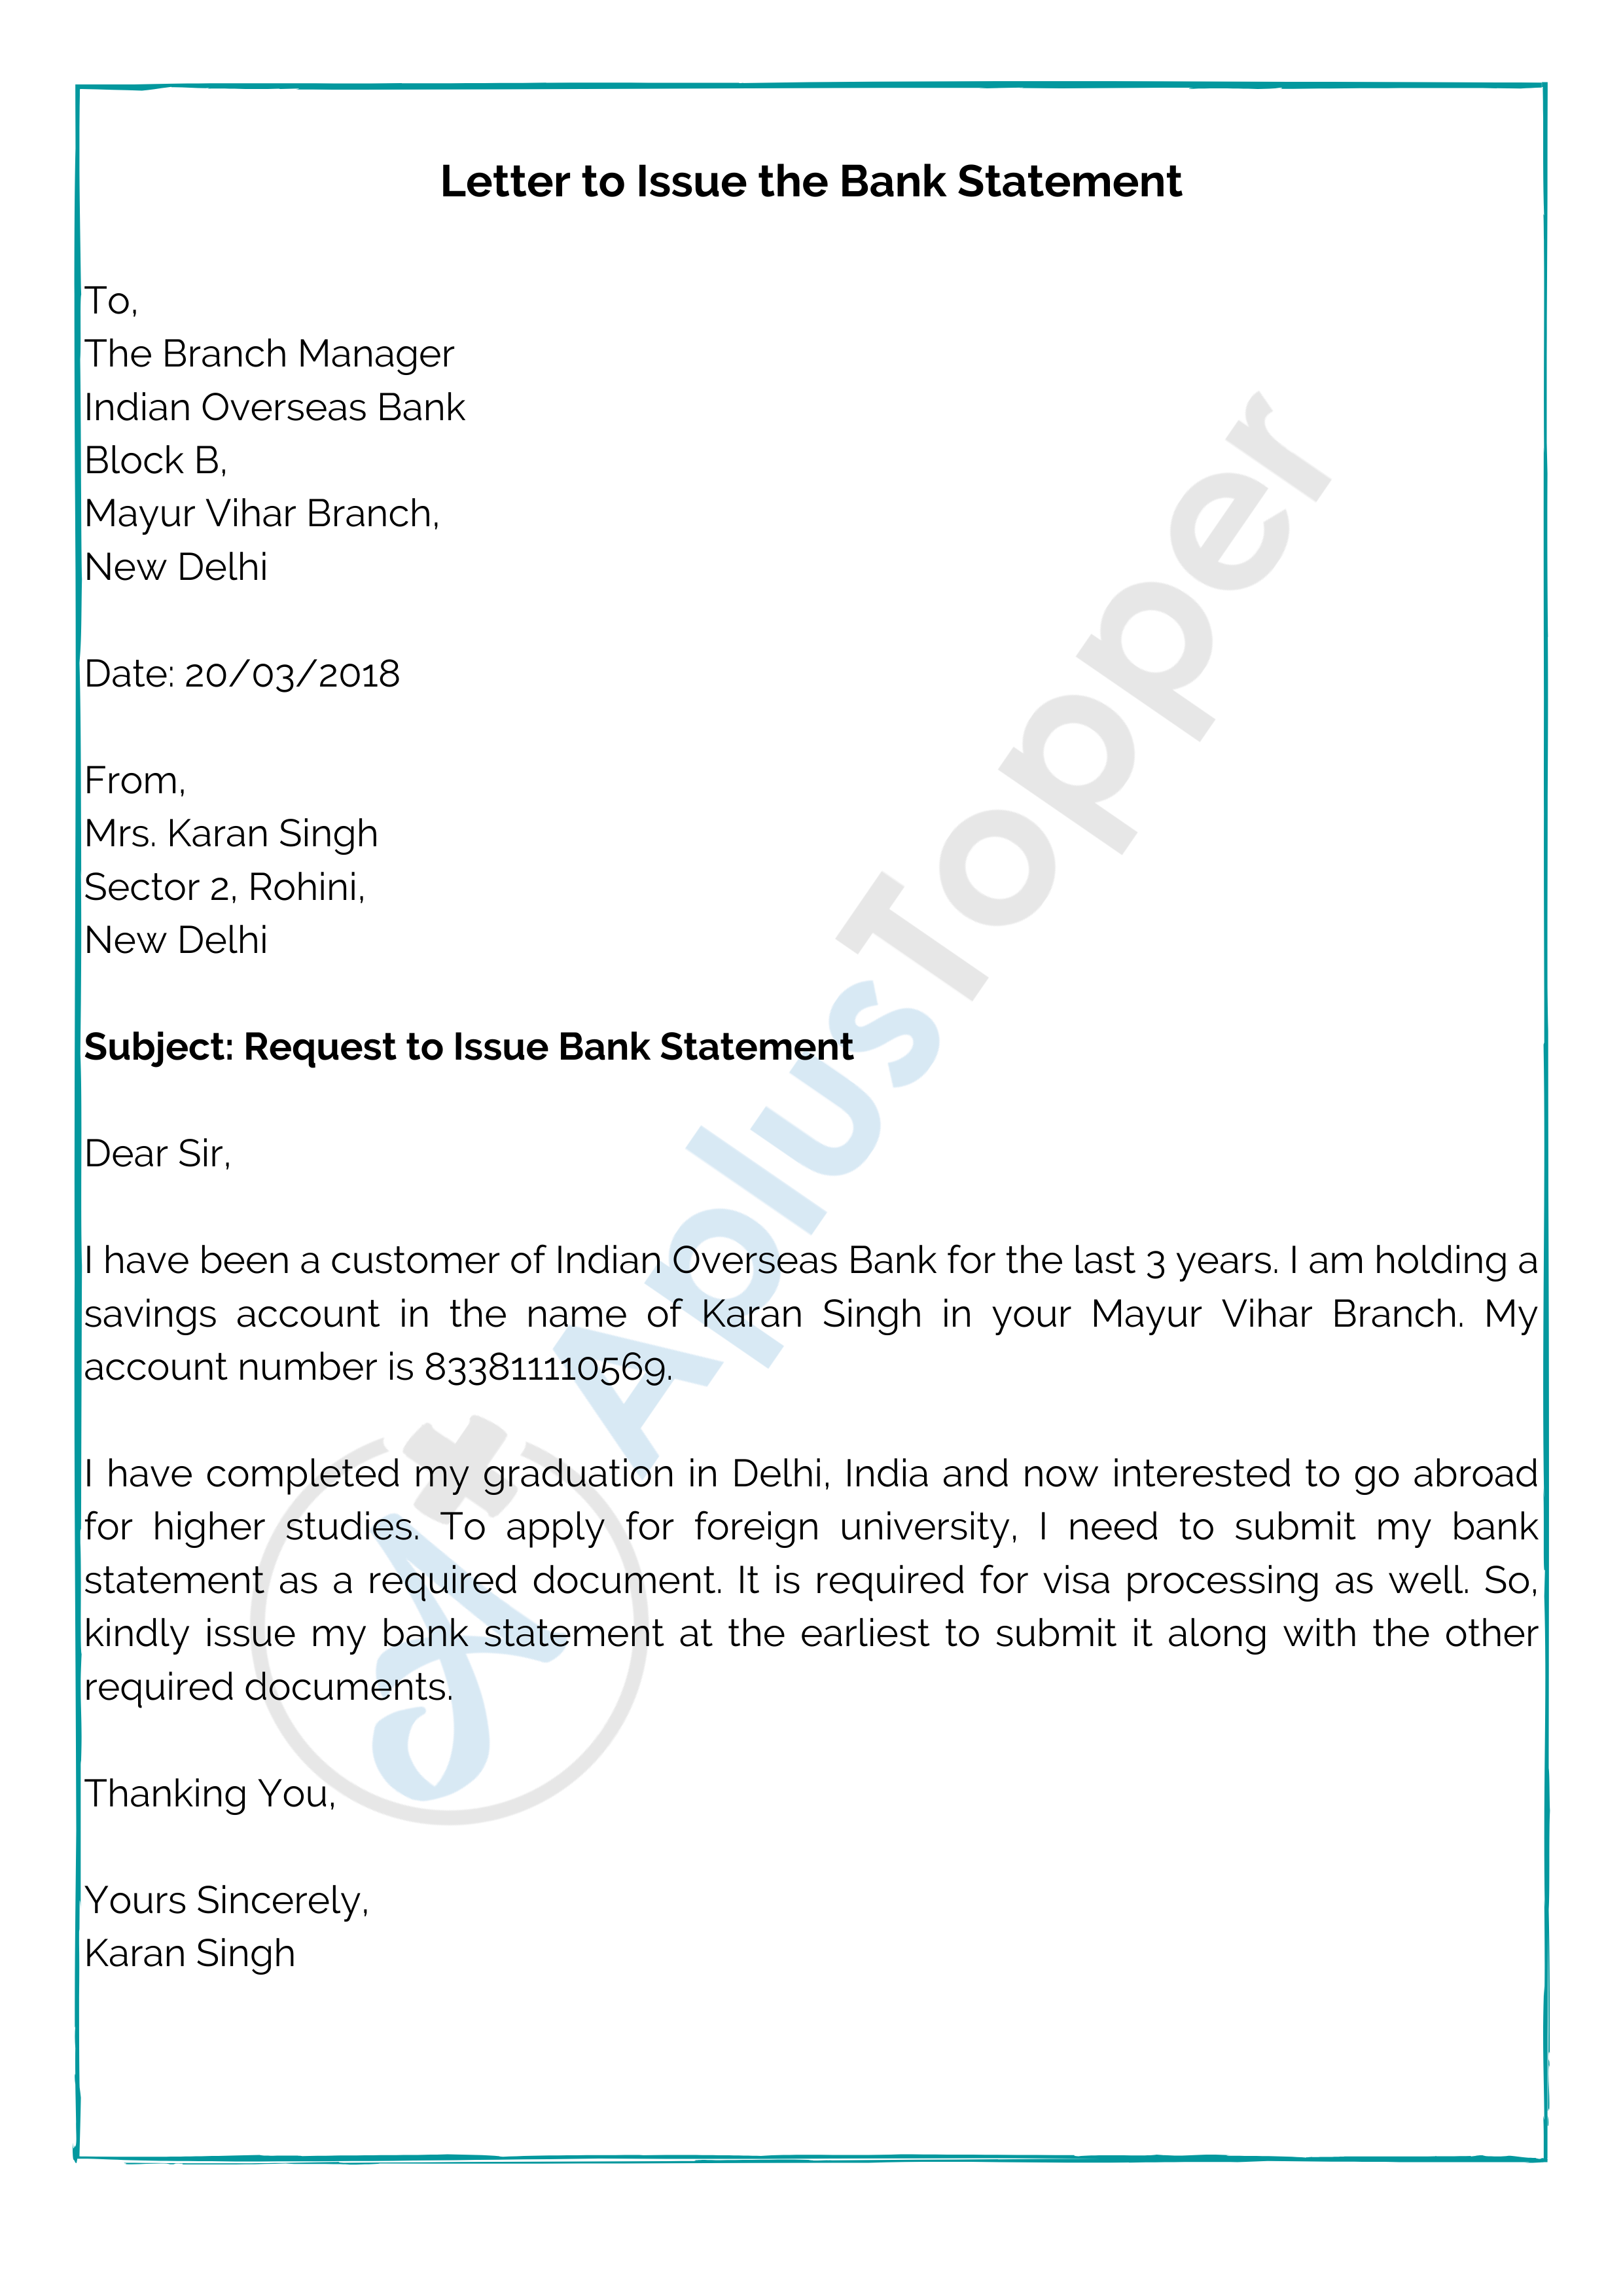 Letter to Issue the Bank Statement